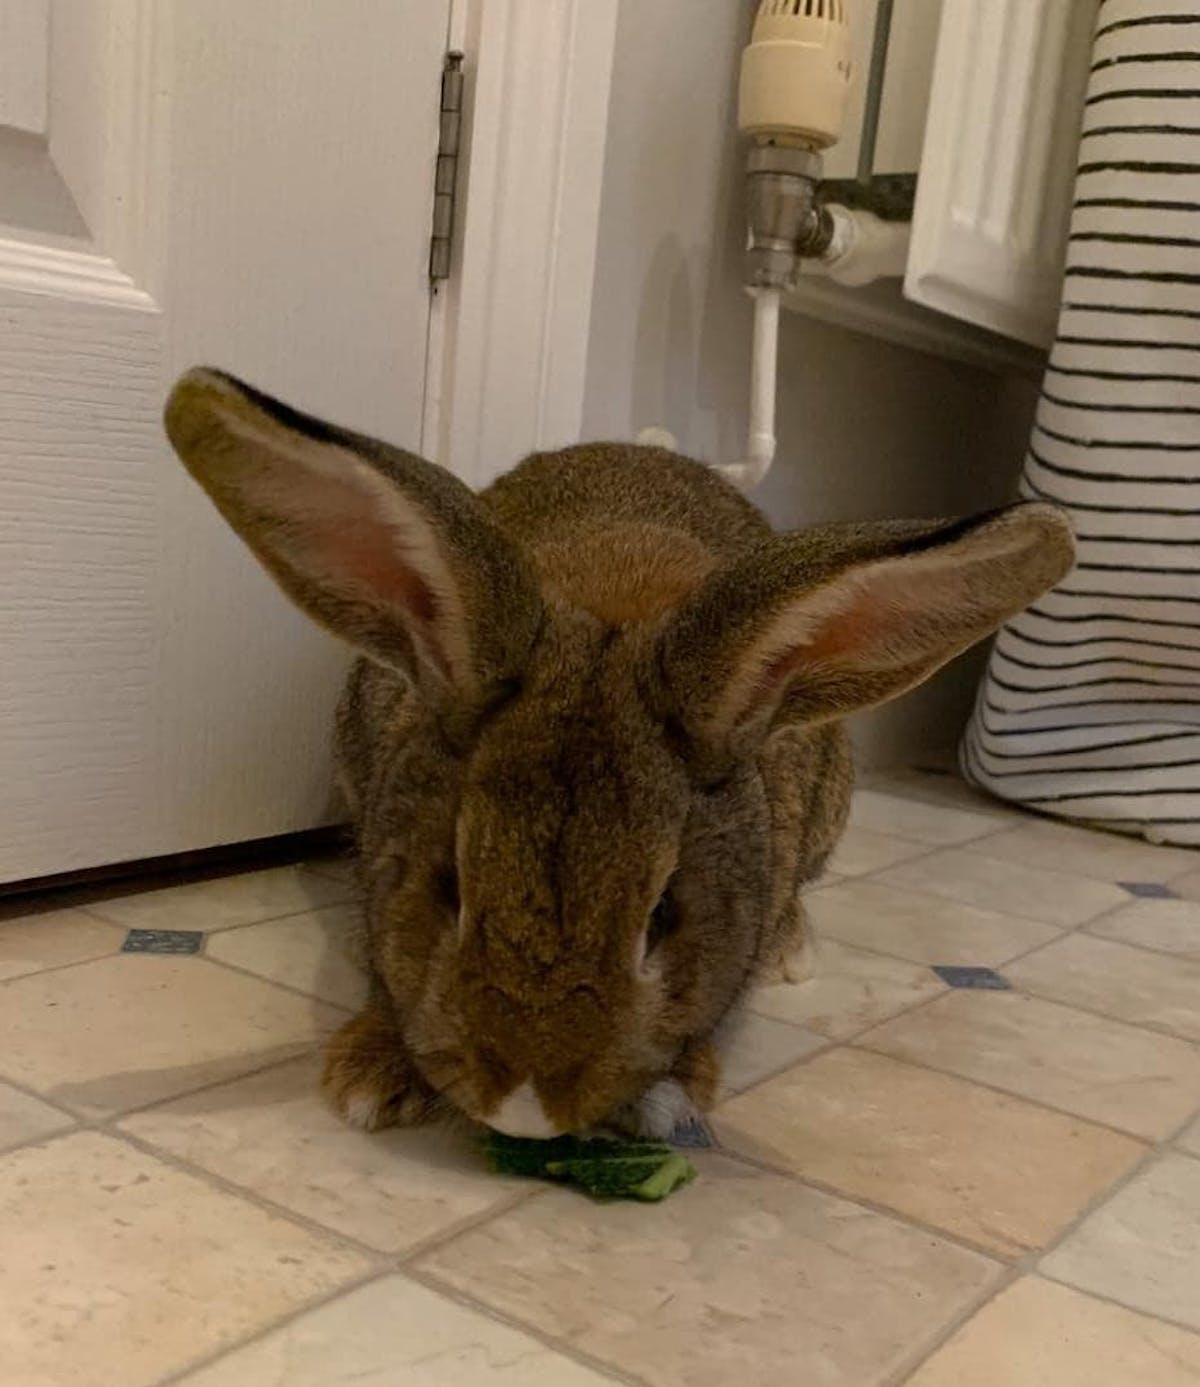 Rabbit named Ivor chewing on cabbage.